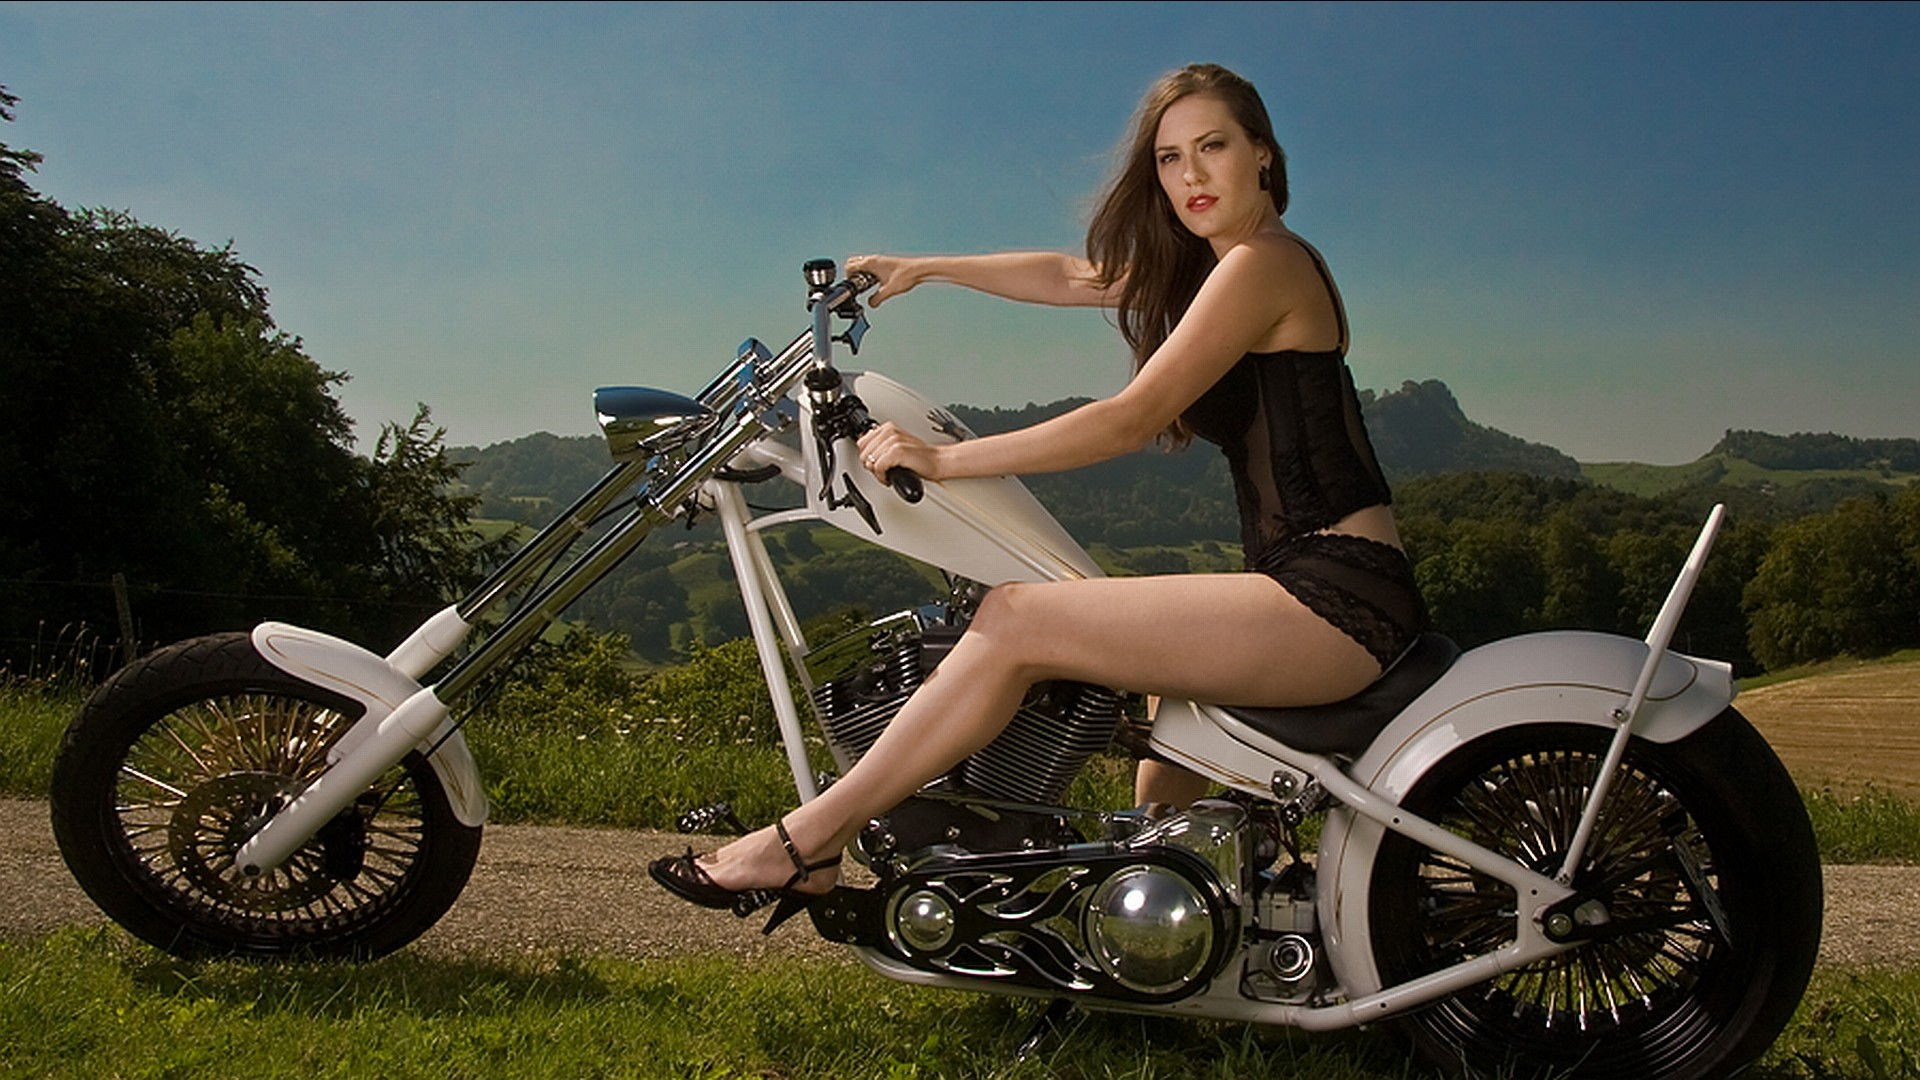 87 Girls & Motorcycles HD Wallpapers | Backgrounds – Wallpaper Abyss – Page  2